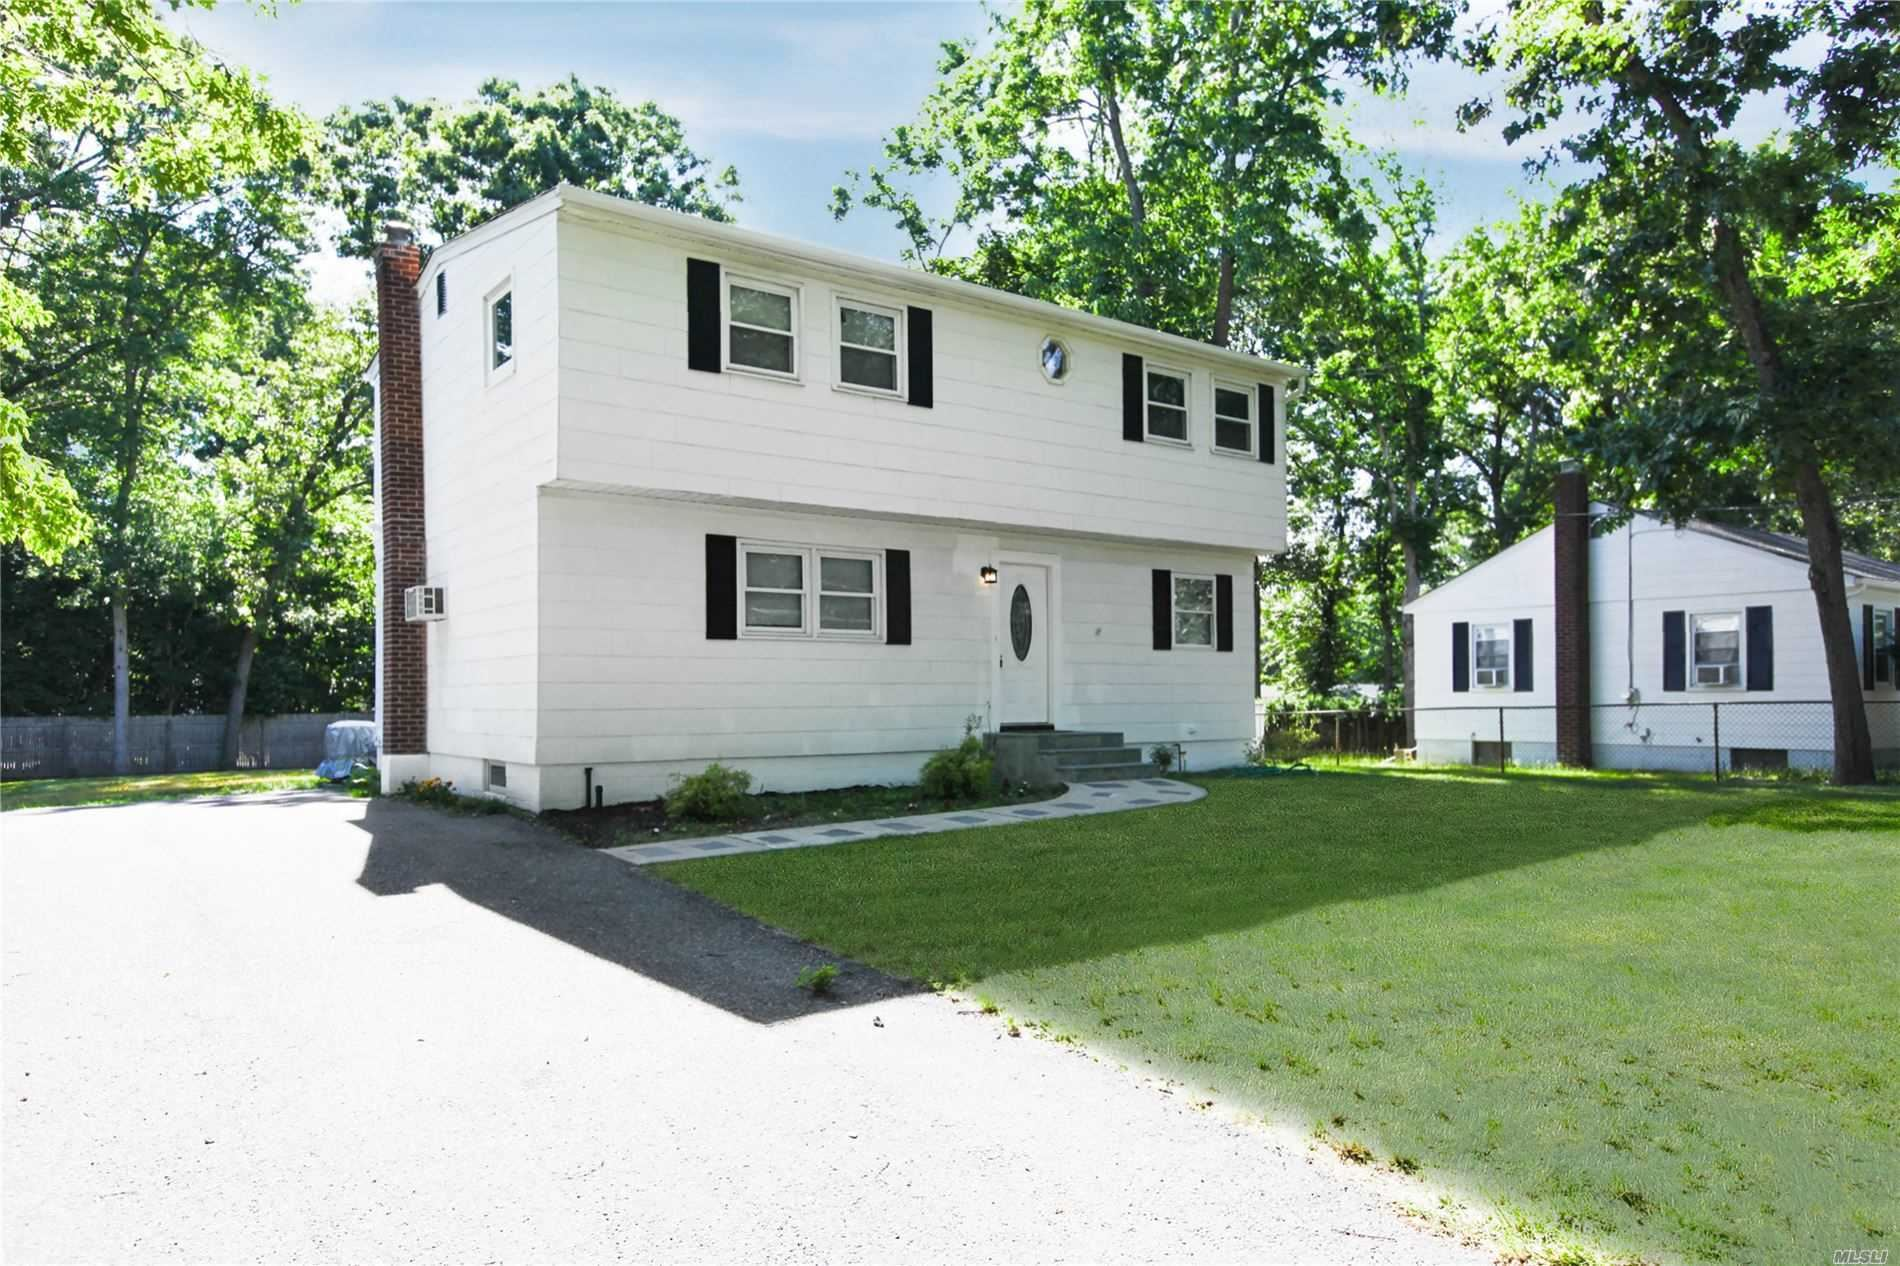 49 N Swezeytown Road, Middle Island, NY 11953 - MLS#: 3225874